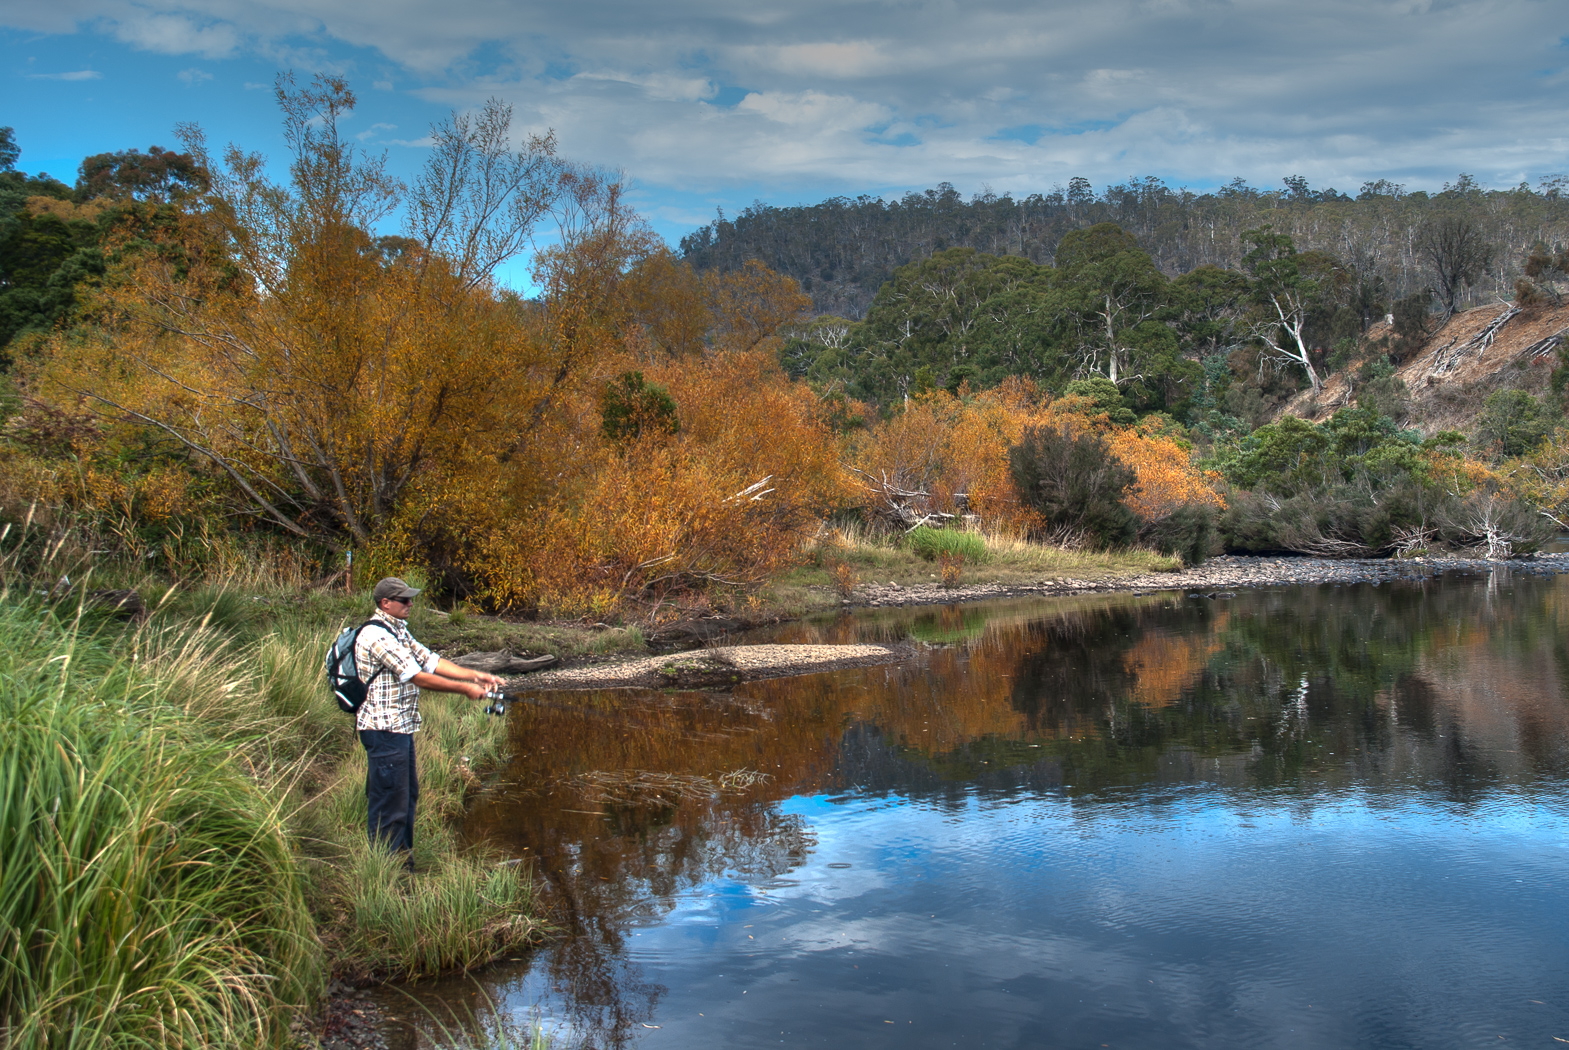 Fishing in Central Highlands